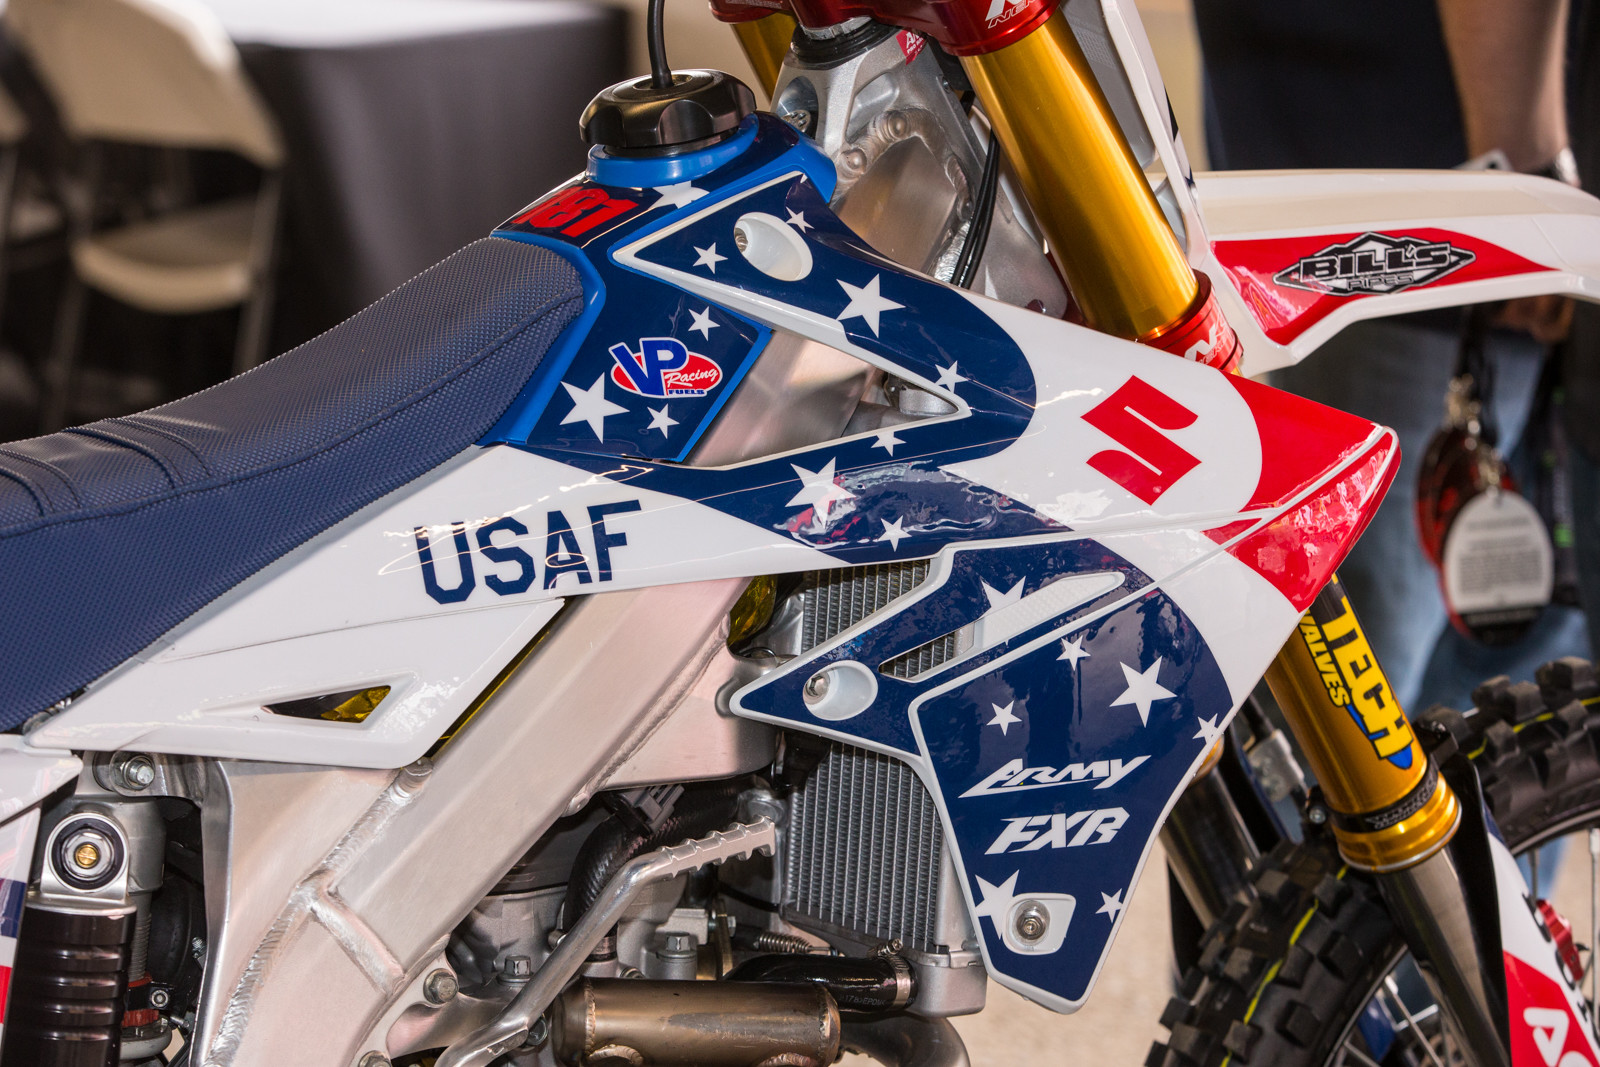 A closer look at what 180 Decals made up for the HEP team.